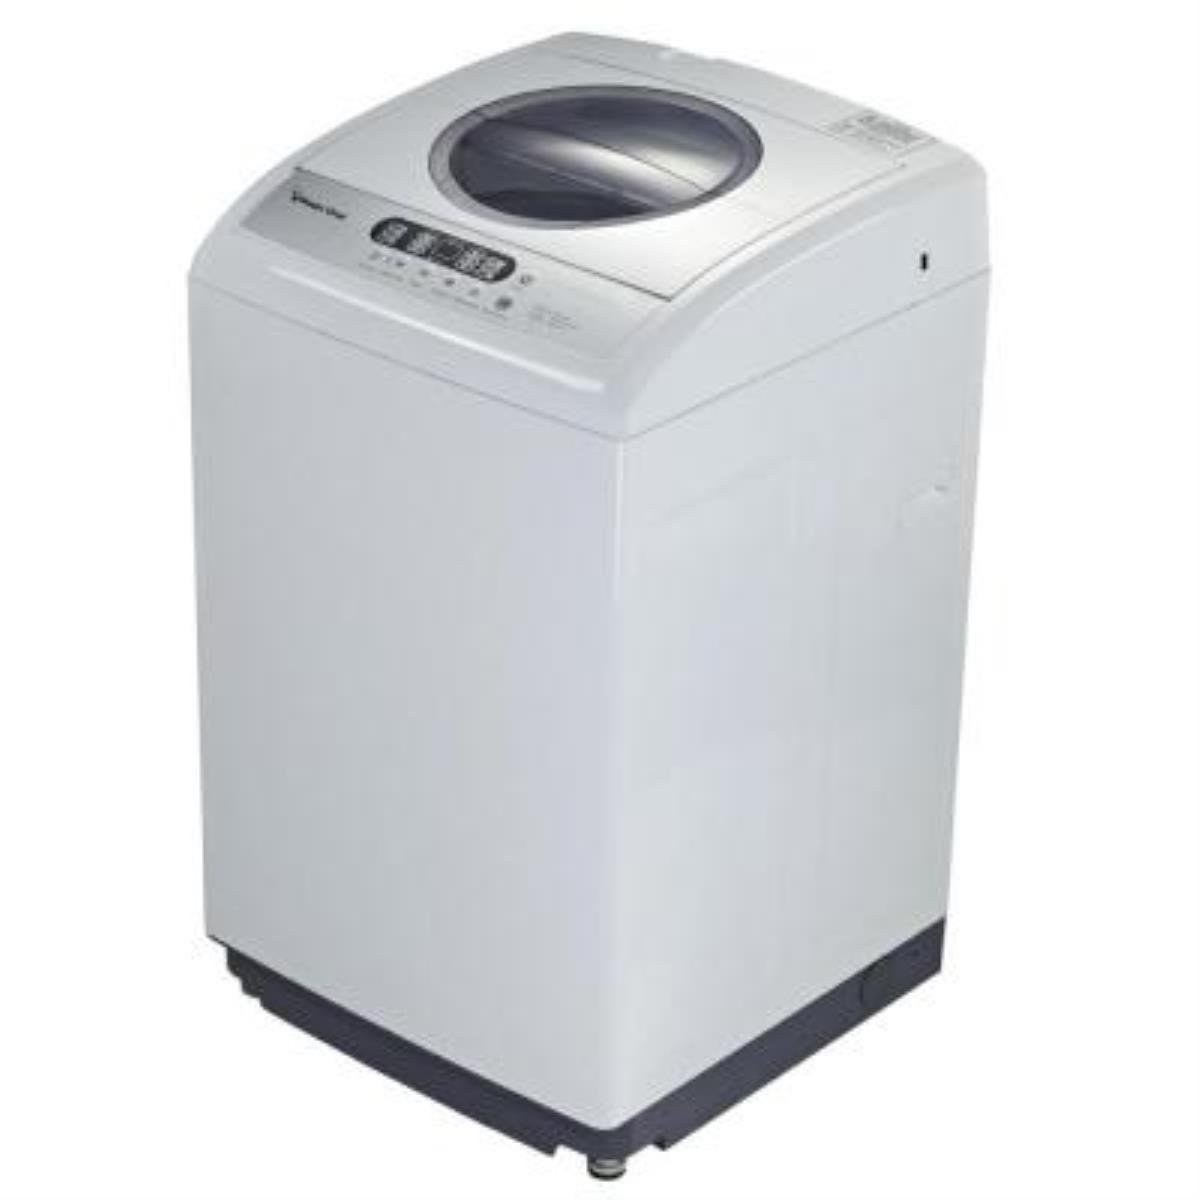 The best top load washer and dryer combo 2015 - The Best Top Load Washer And Dryer Combo 2015 2